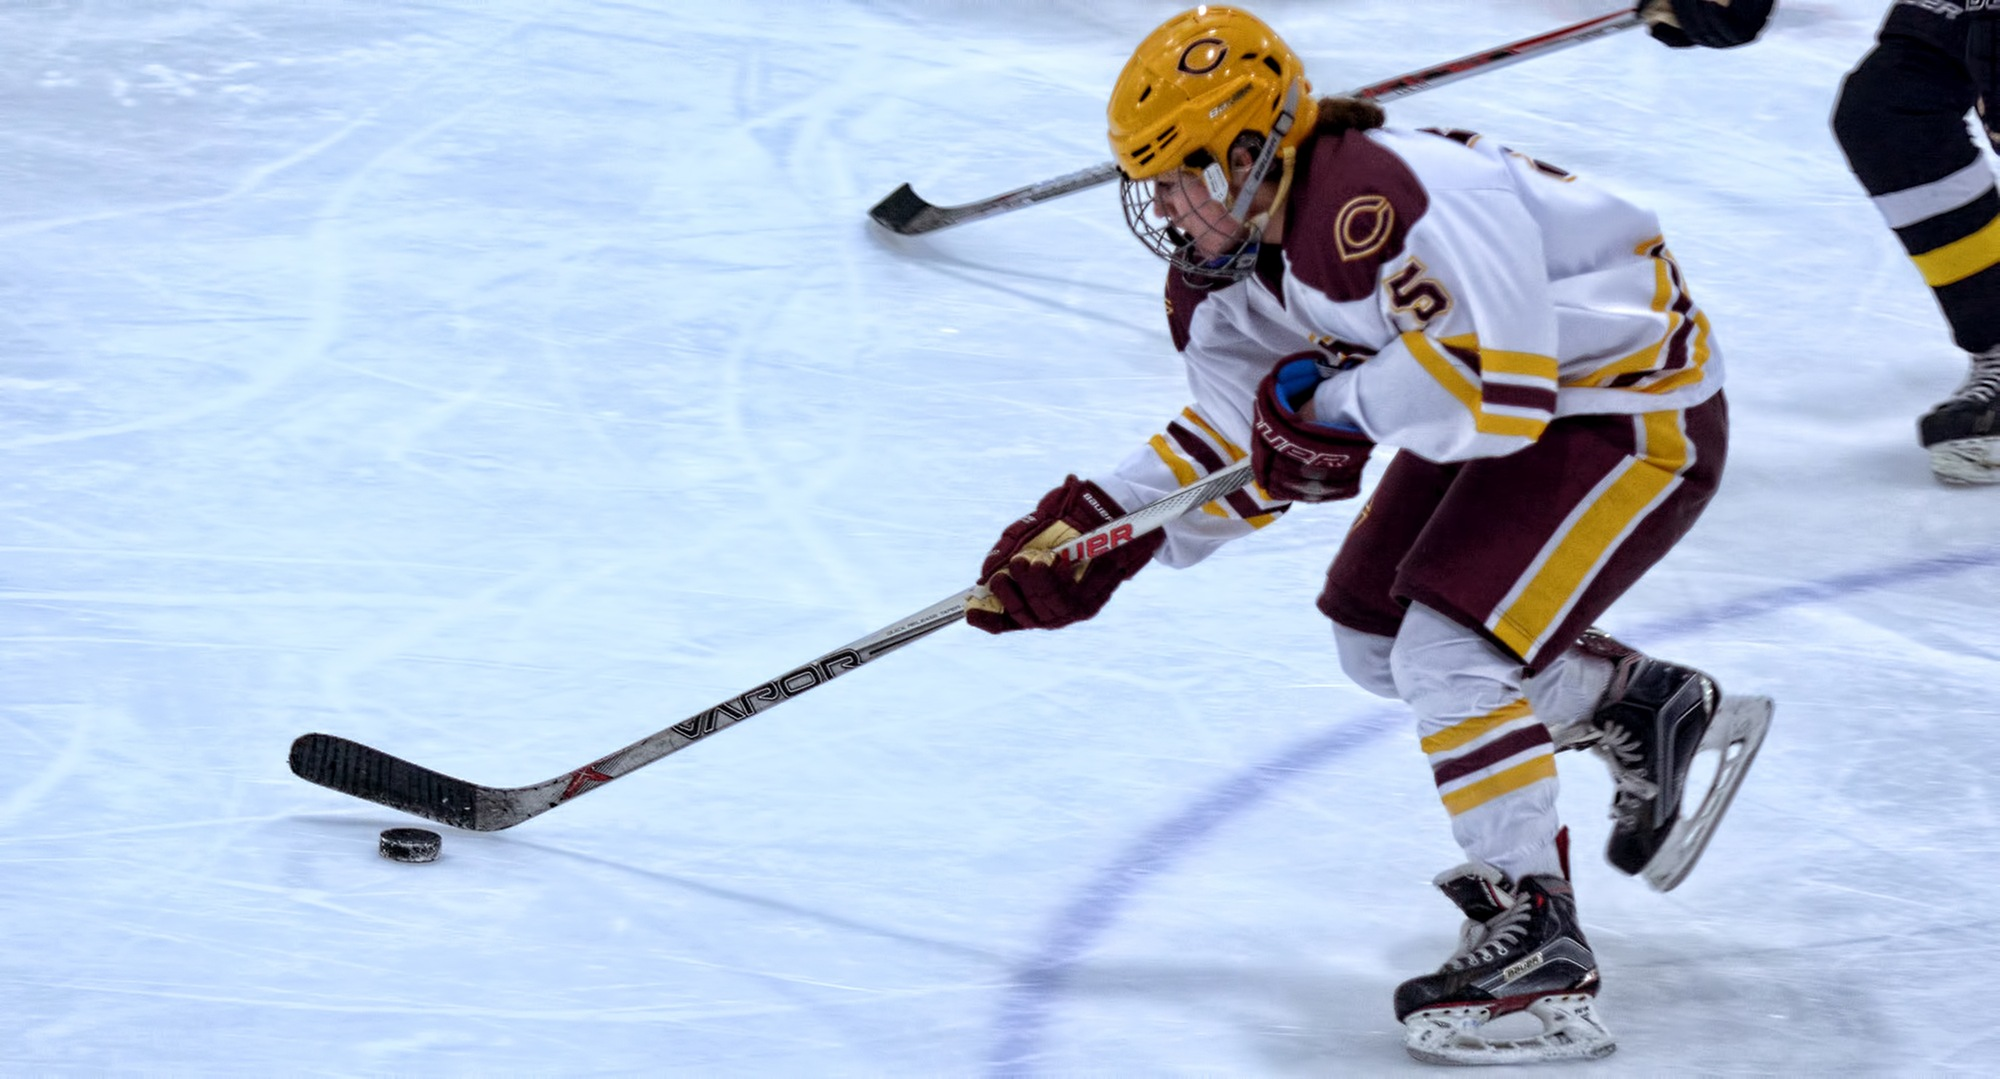 Freshman Josee Lundgren scored her third goal of the season in the Cobbers' 2-2 OT tie at Augsburg in the series opener.